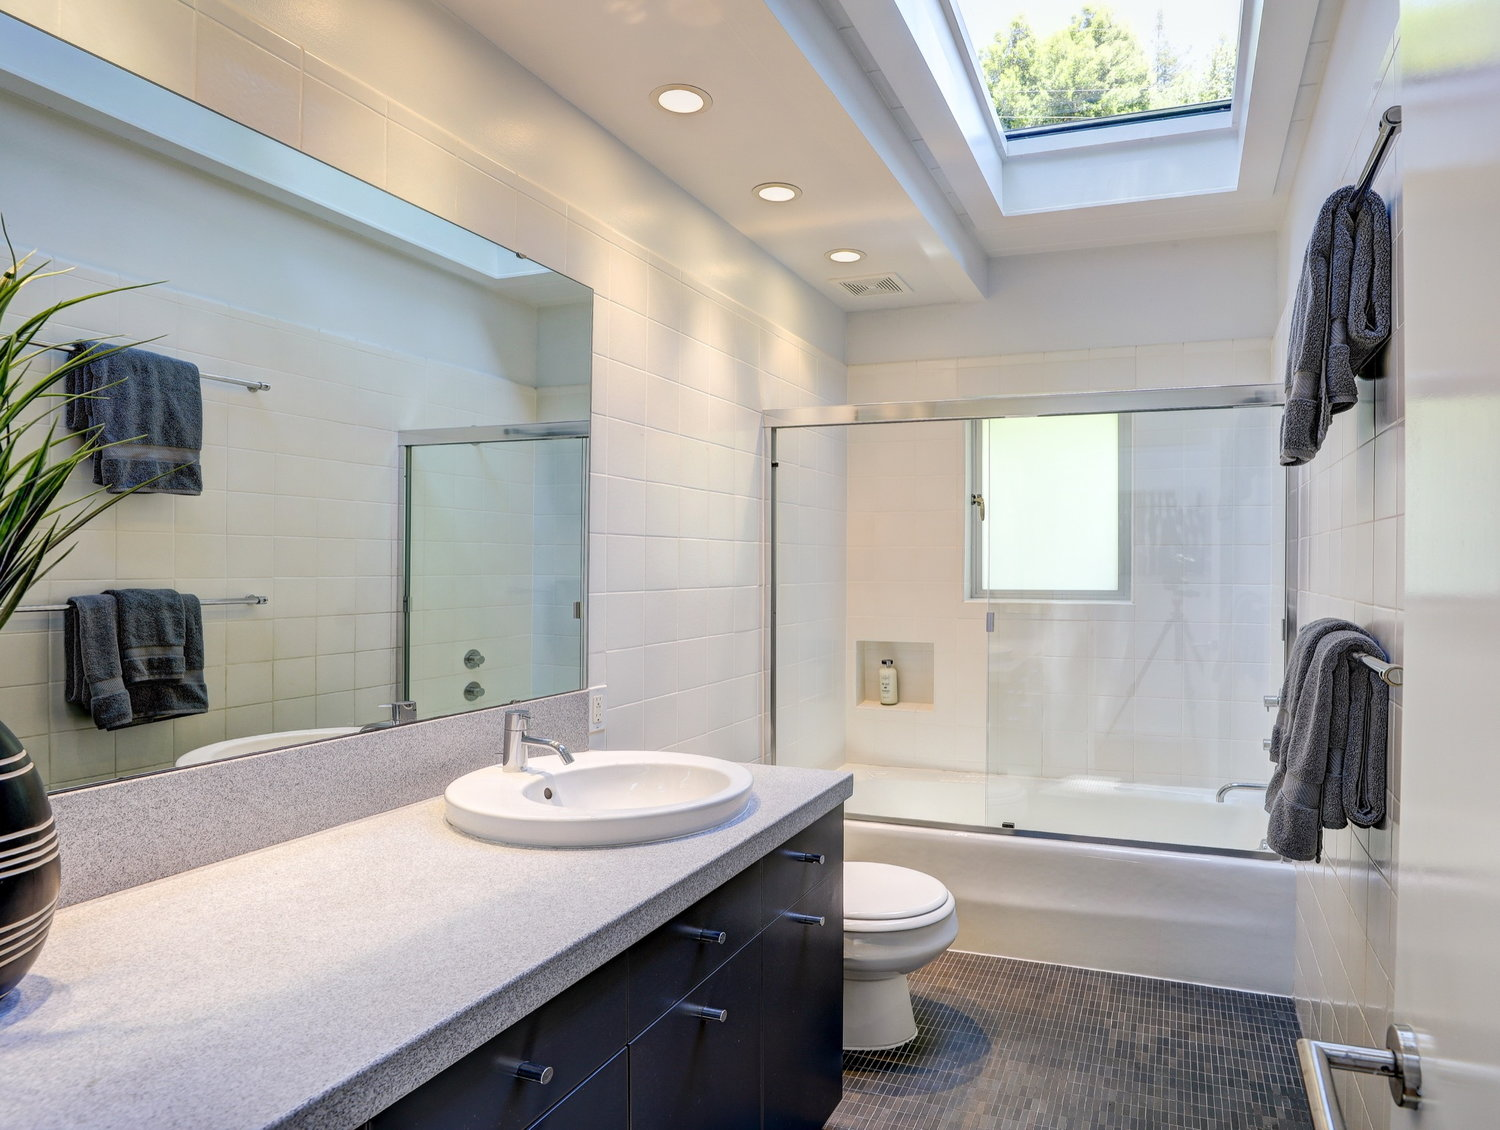 7 Barrie Way, Mill Valley CA 94941 | Listed by Barr Haney + Whitney ...